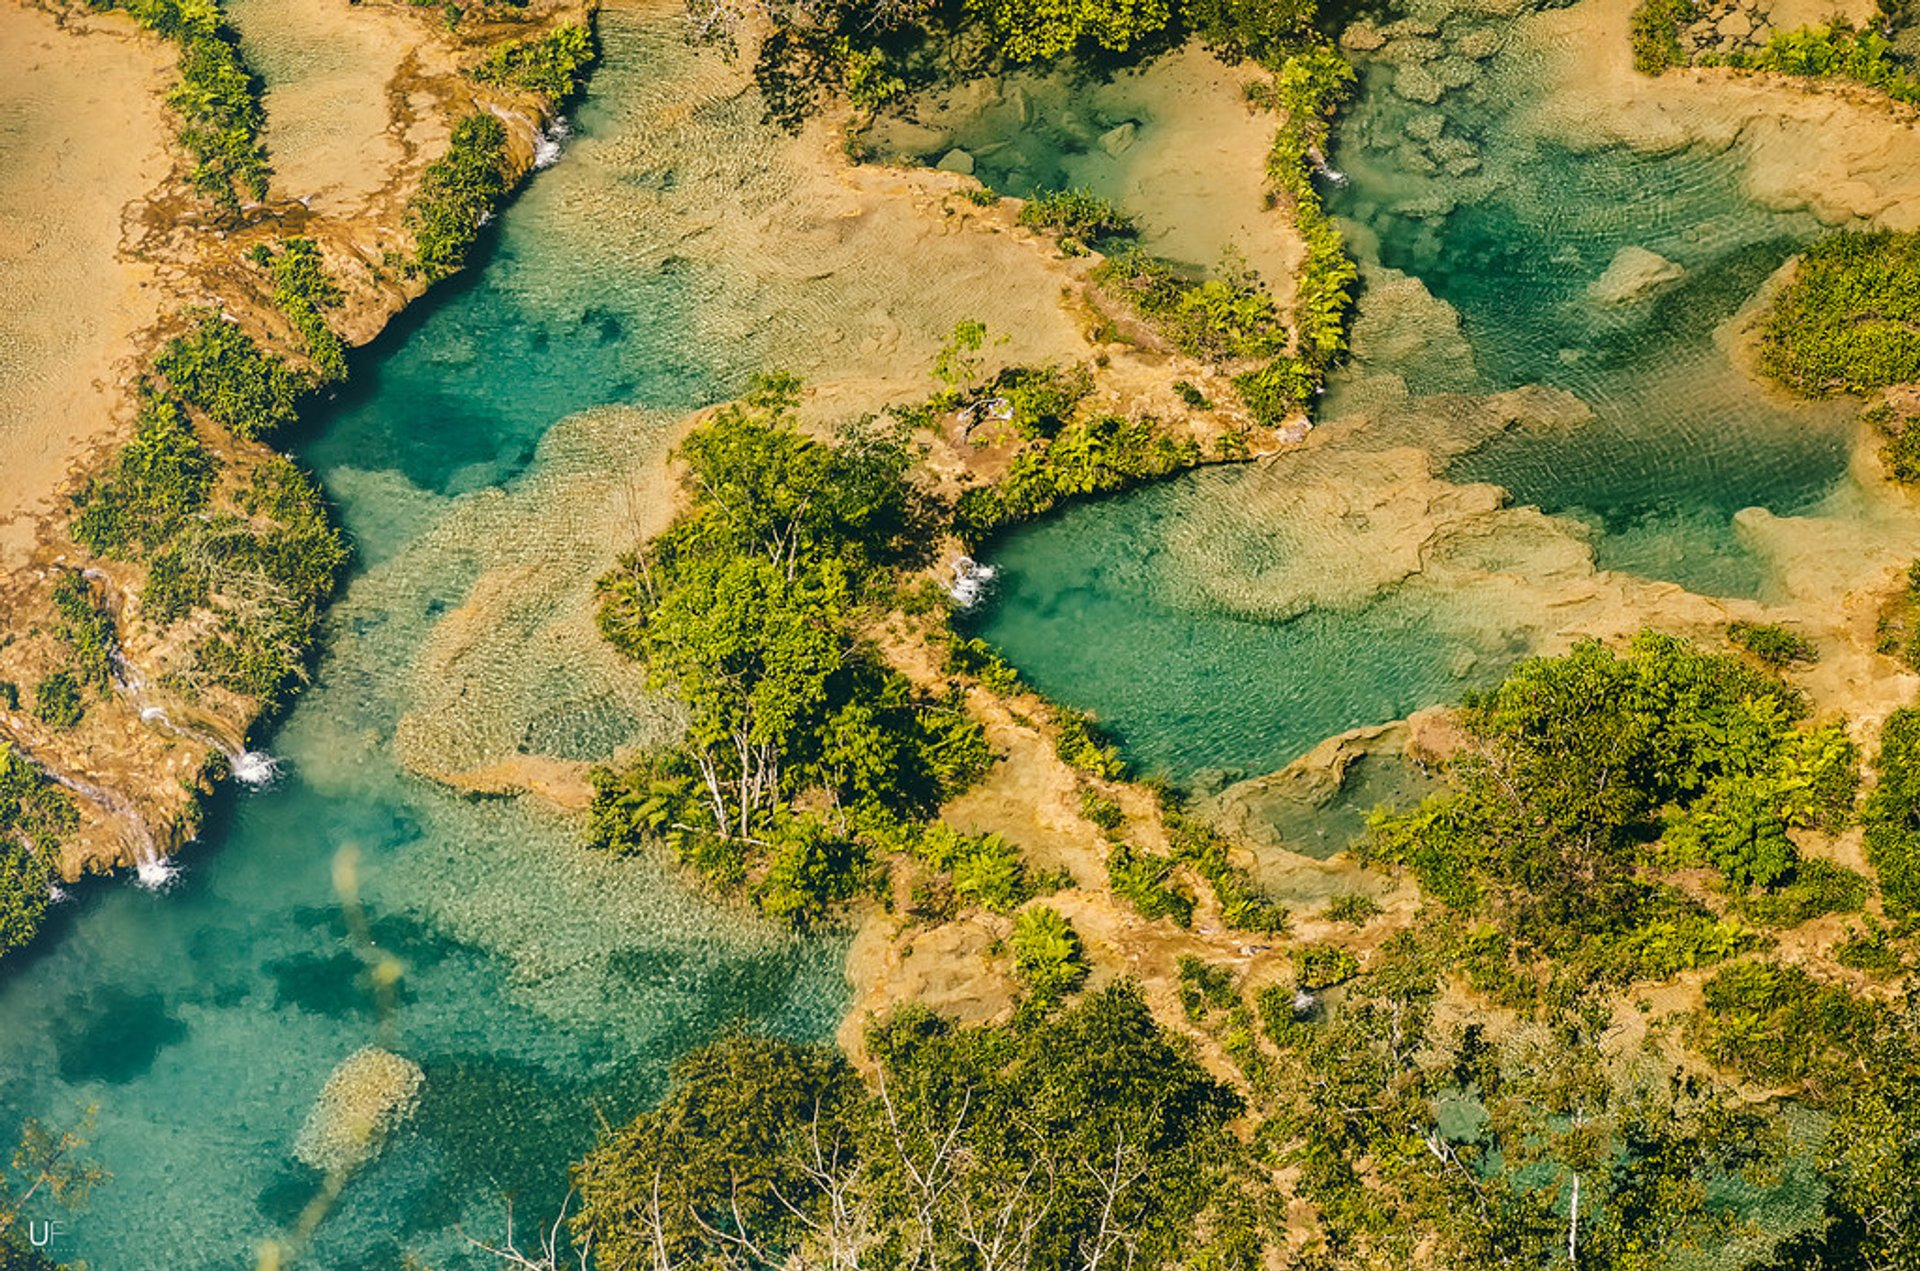 Best time to see Semuc Champey: Natural Pool Staircase in Guatemala 2019